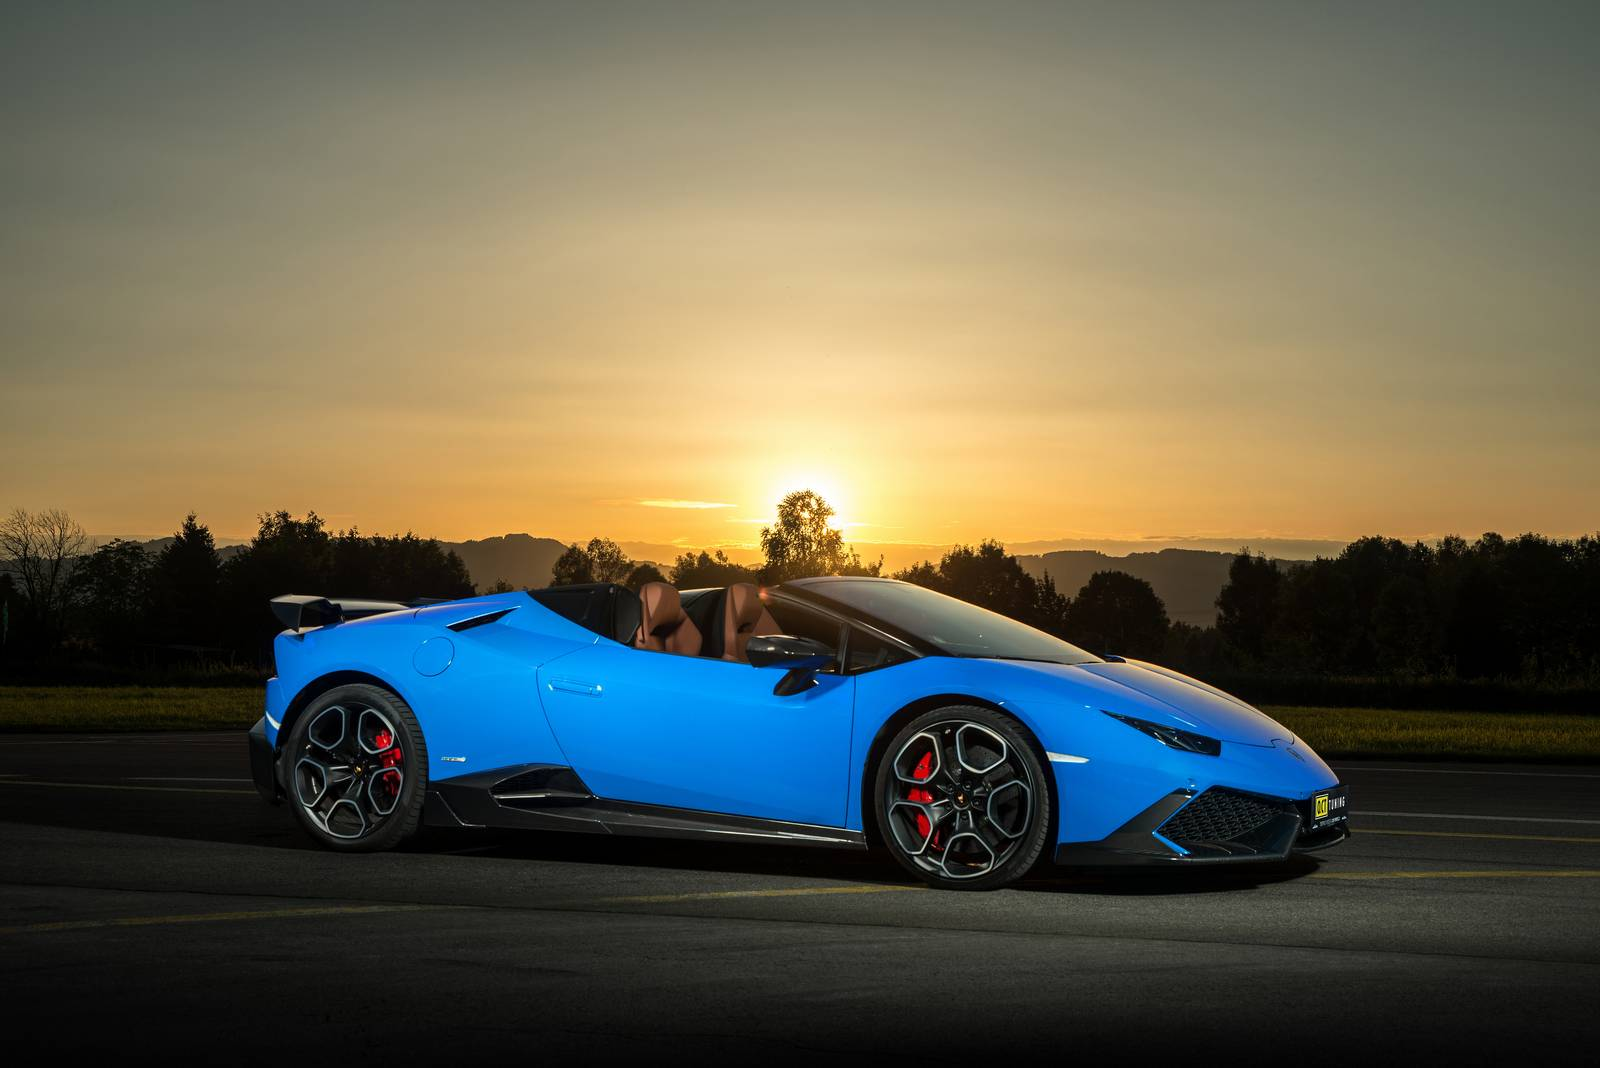 official 805hp lamborghini huracan spyder by o ct tuning. Black Bedroom Furniture Sets. Home Design Ideas